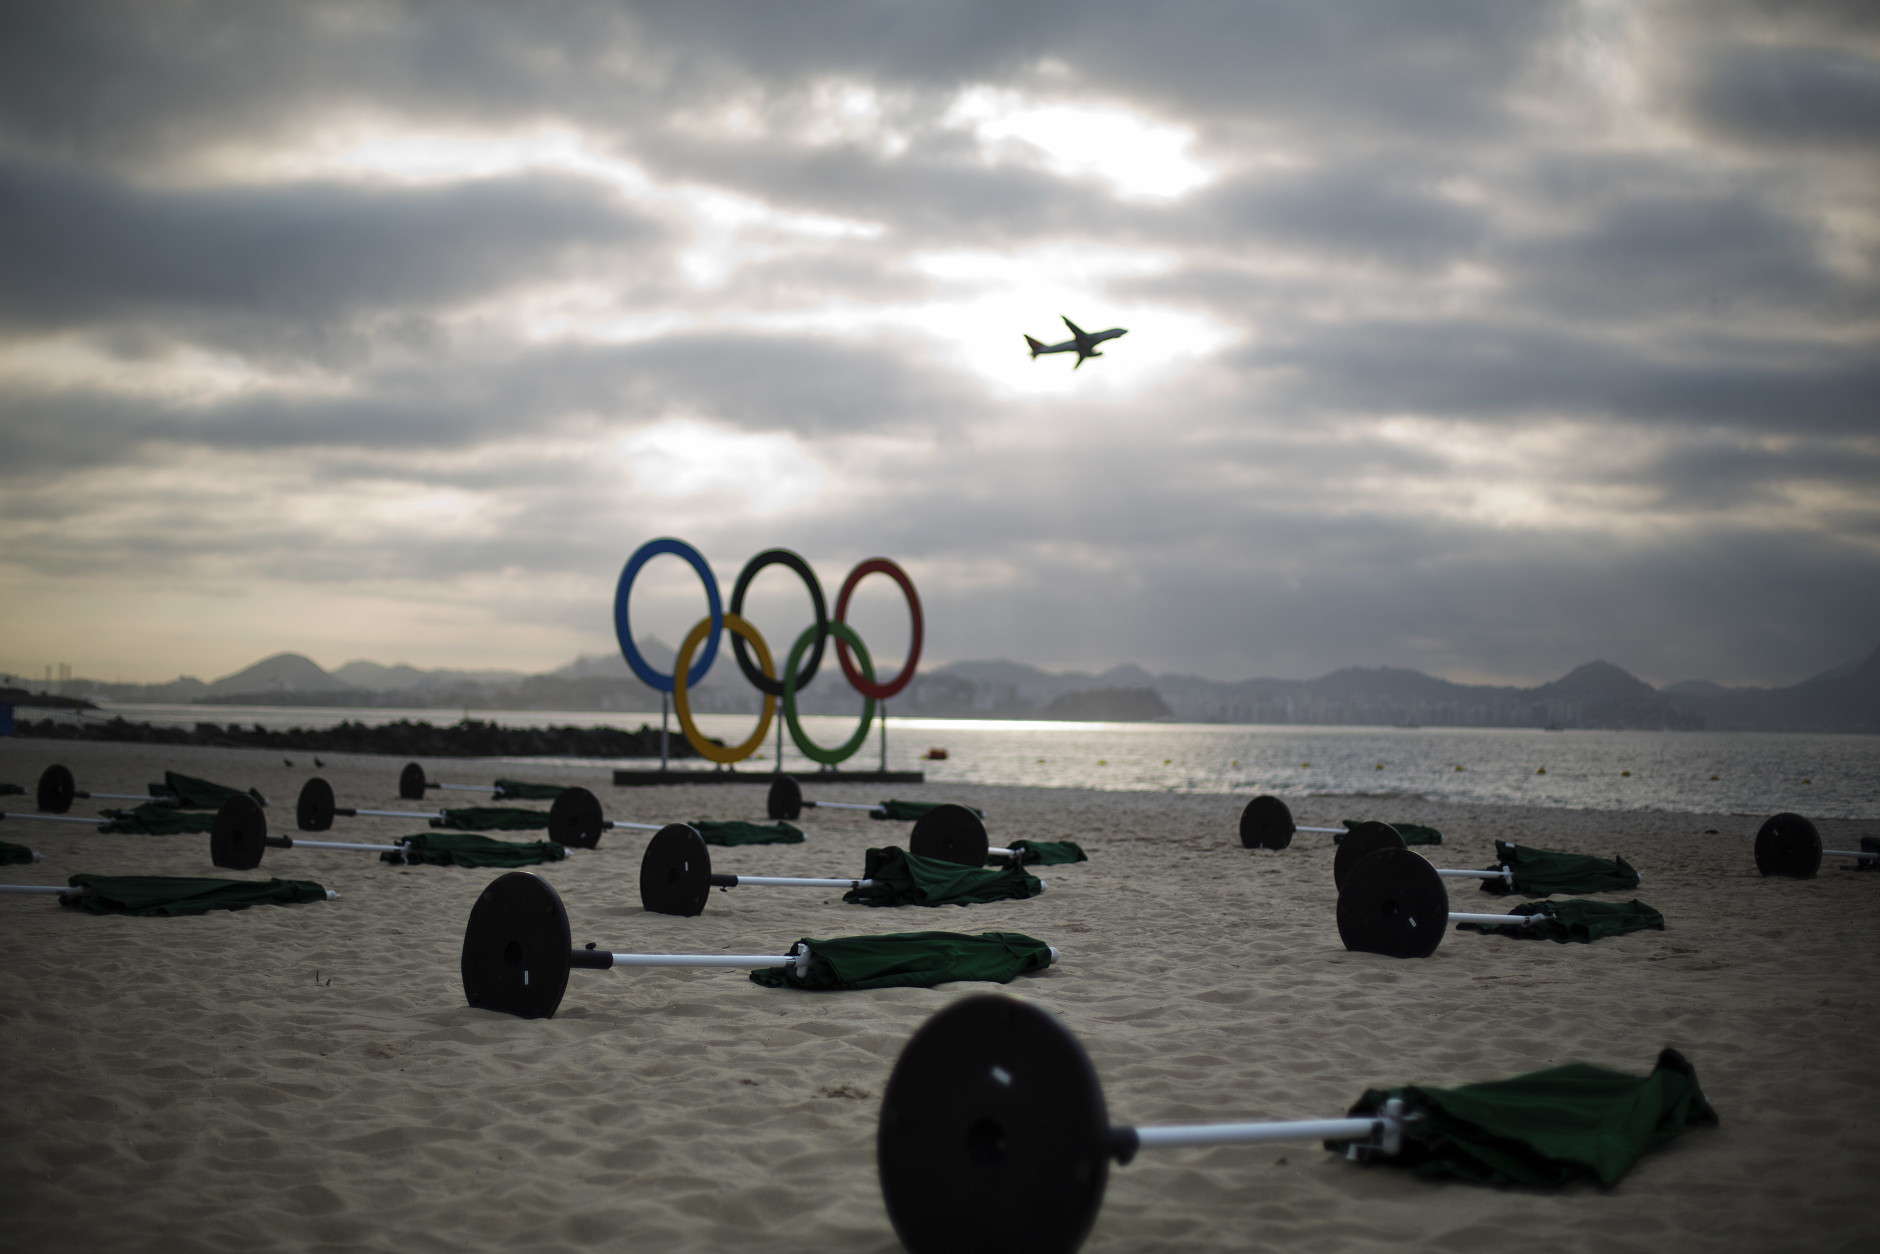 Umbrellas lay on the sand at the sailing venue as a plane takes off in the distance at the 2016 Summer Olympics in Rio de Janeiro, Brazil, Tuesday, Aug. 9, 2016. (AP Photo/David Goldman)